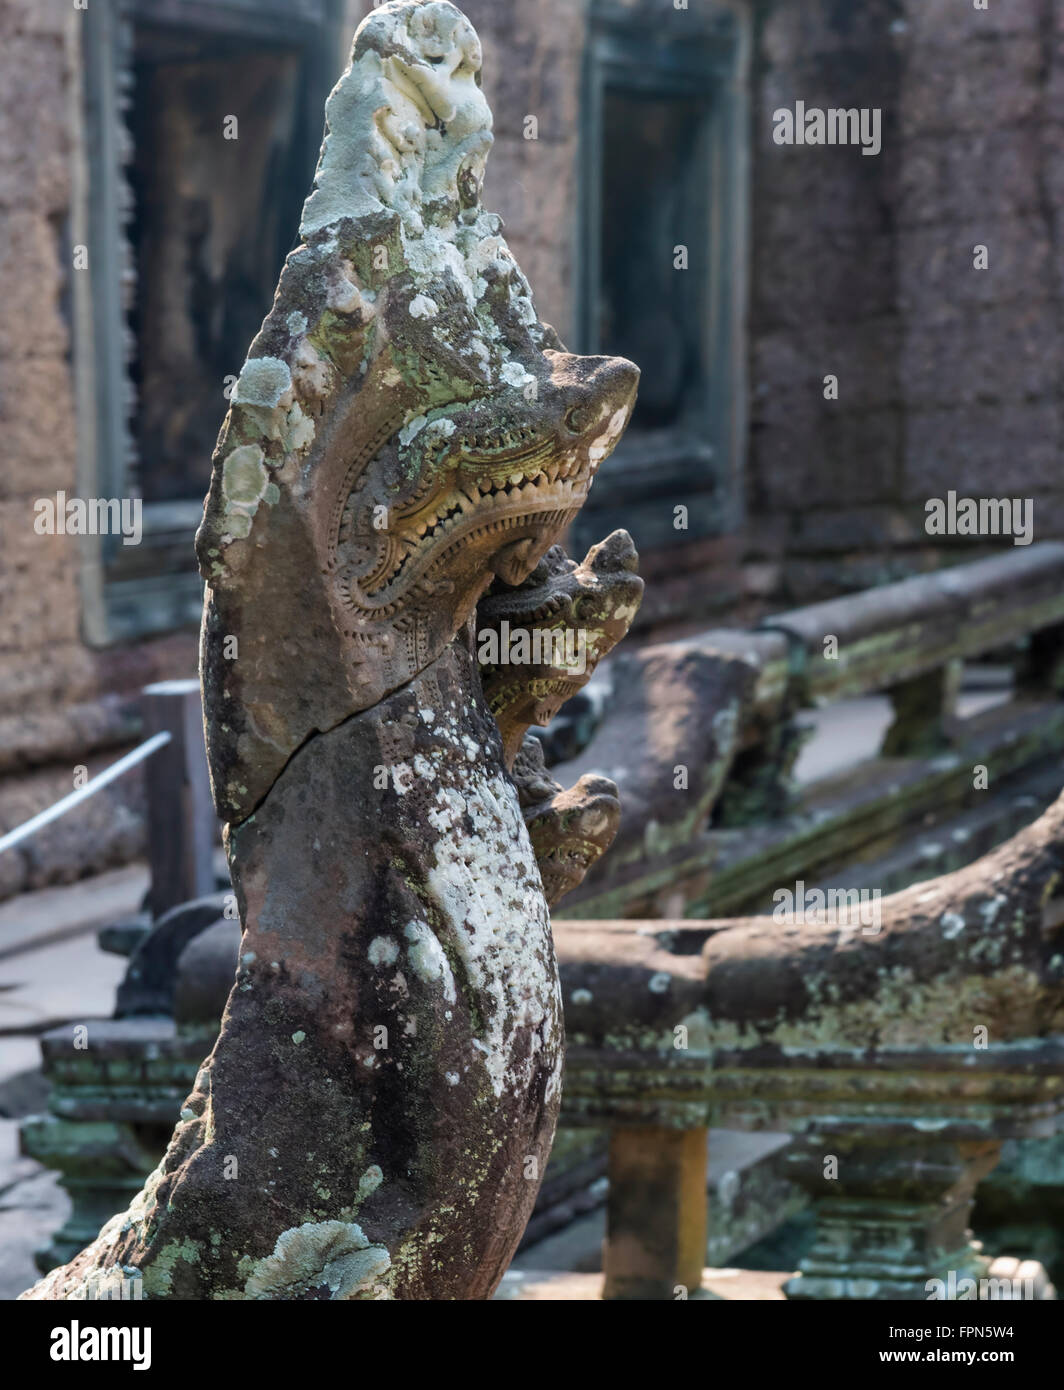 Statue of a Naga, or snake encrusted with lichens, with